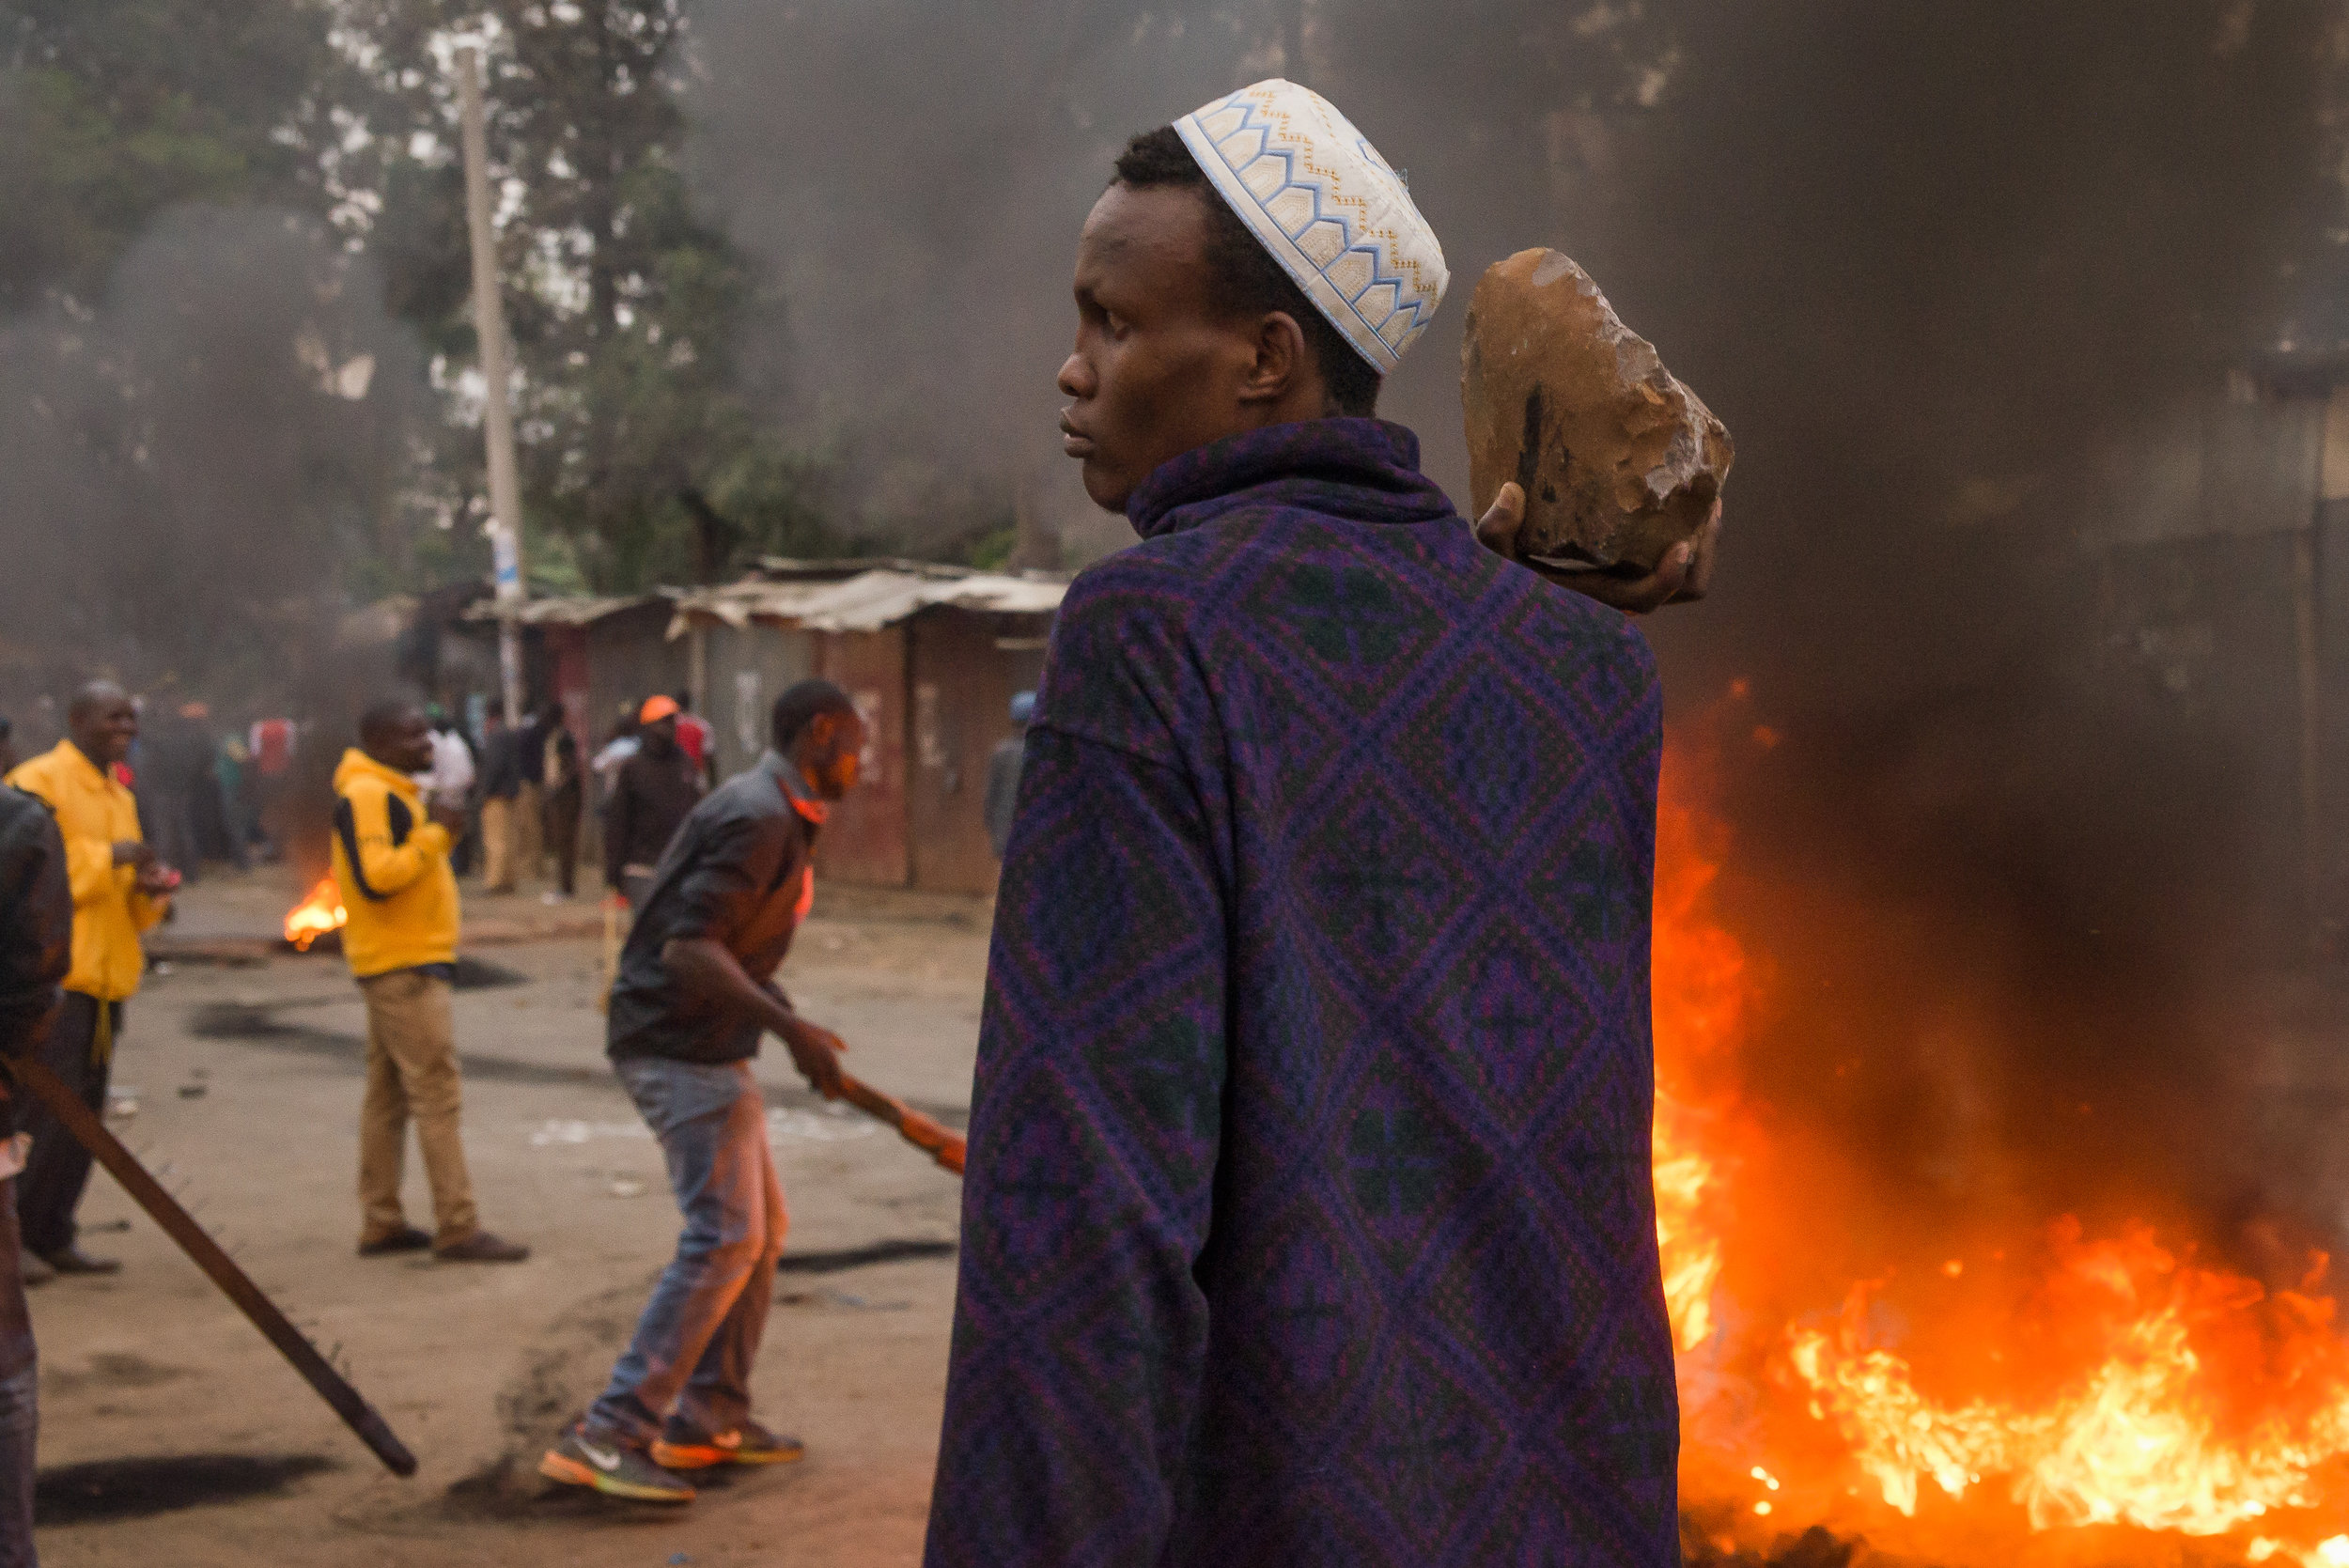 A man holds a large stone during a protest in Nairobi, Kenya. Credit:Katie G. Nelson/PRI